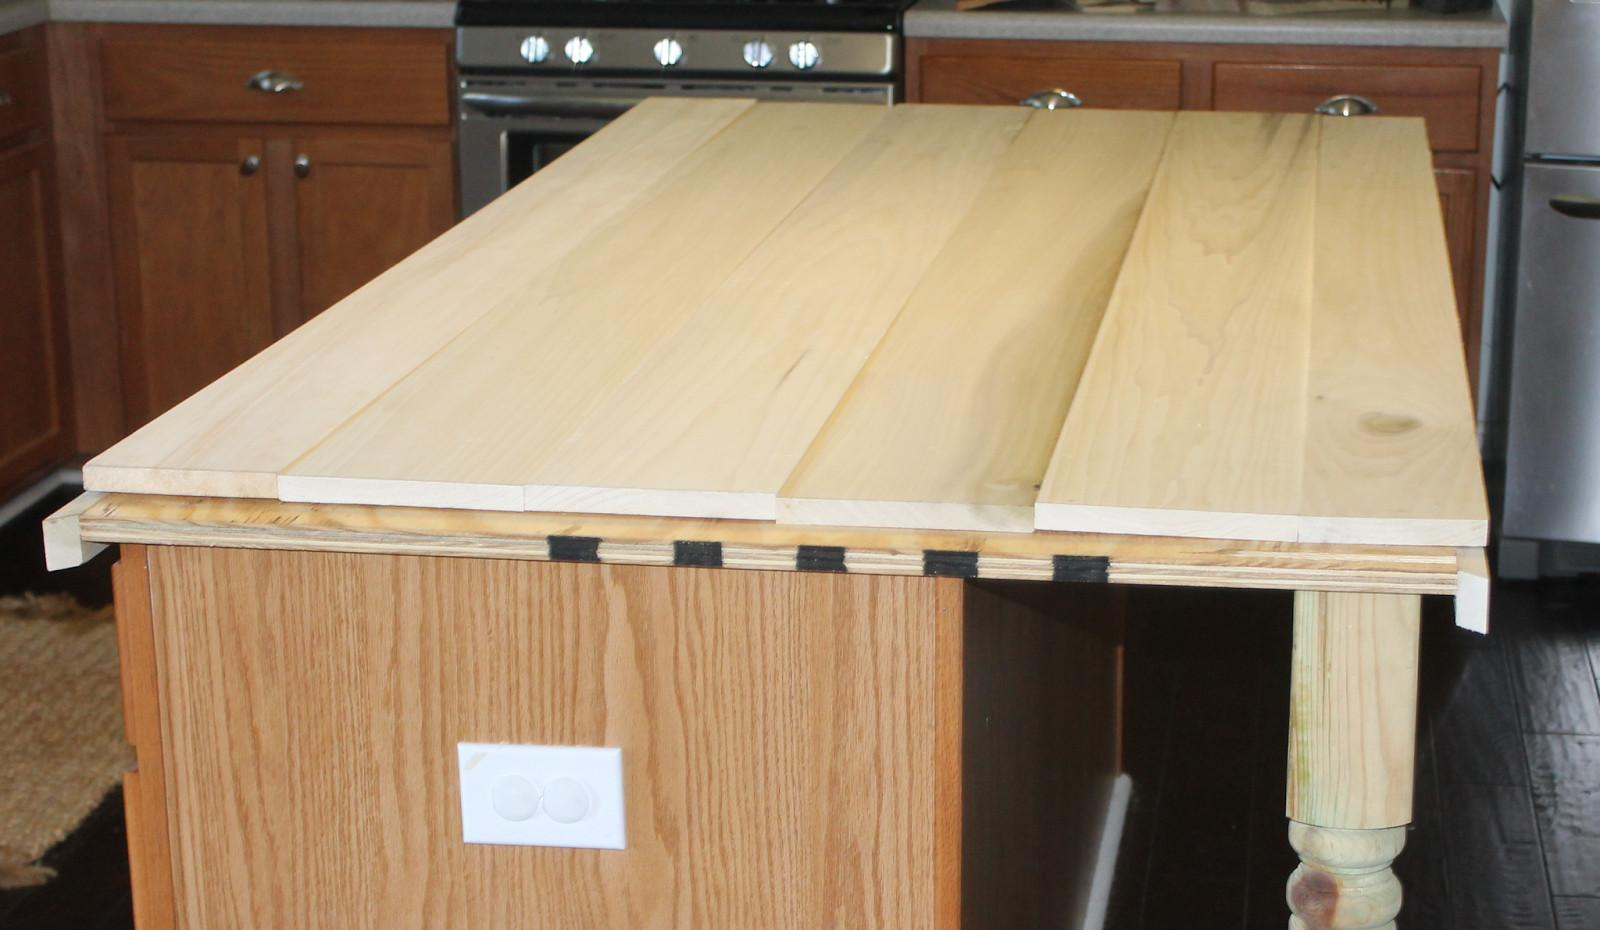 Unvarnished Reclaimed Wood Countertop Square Kitchen